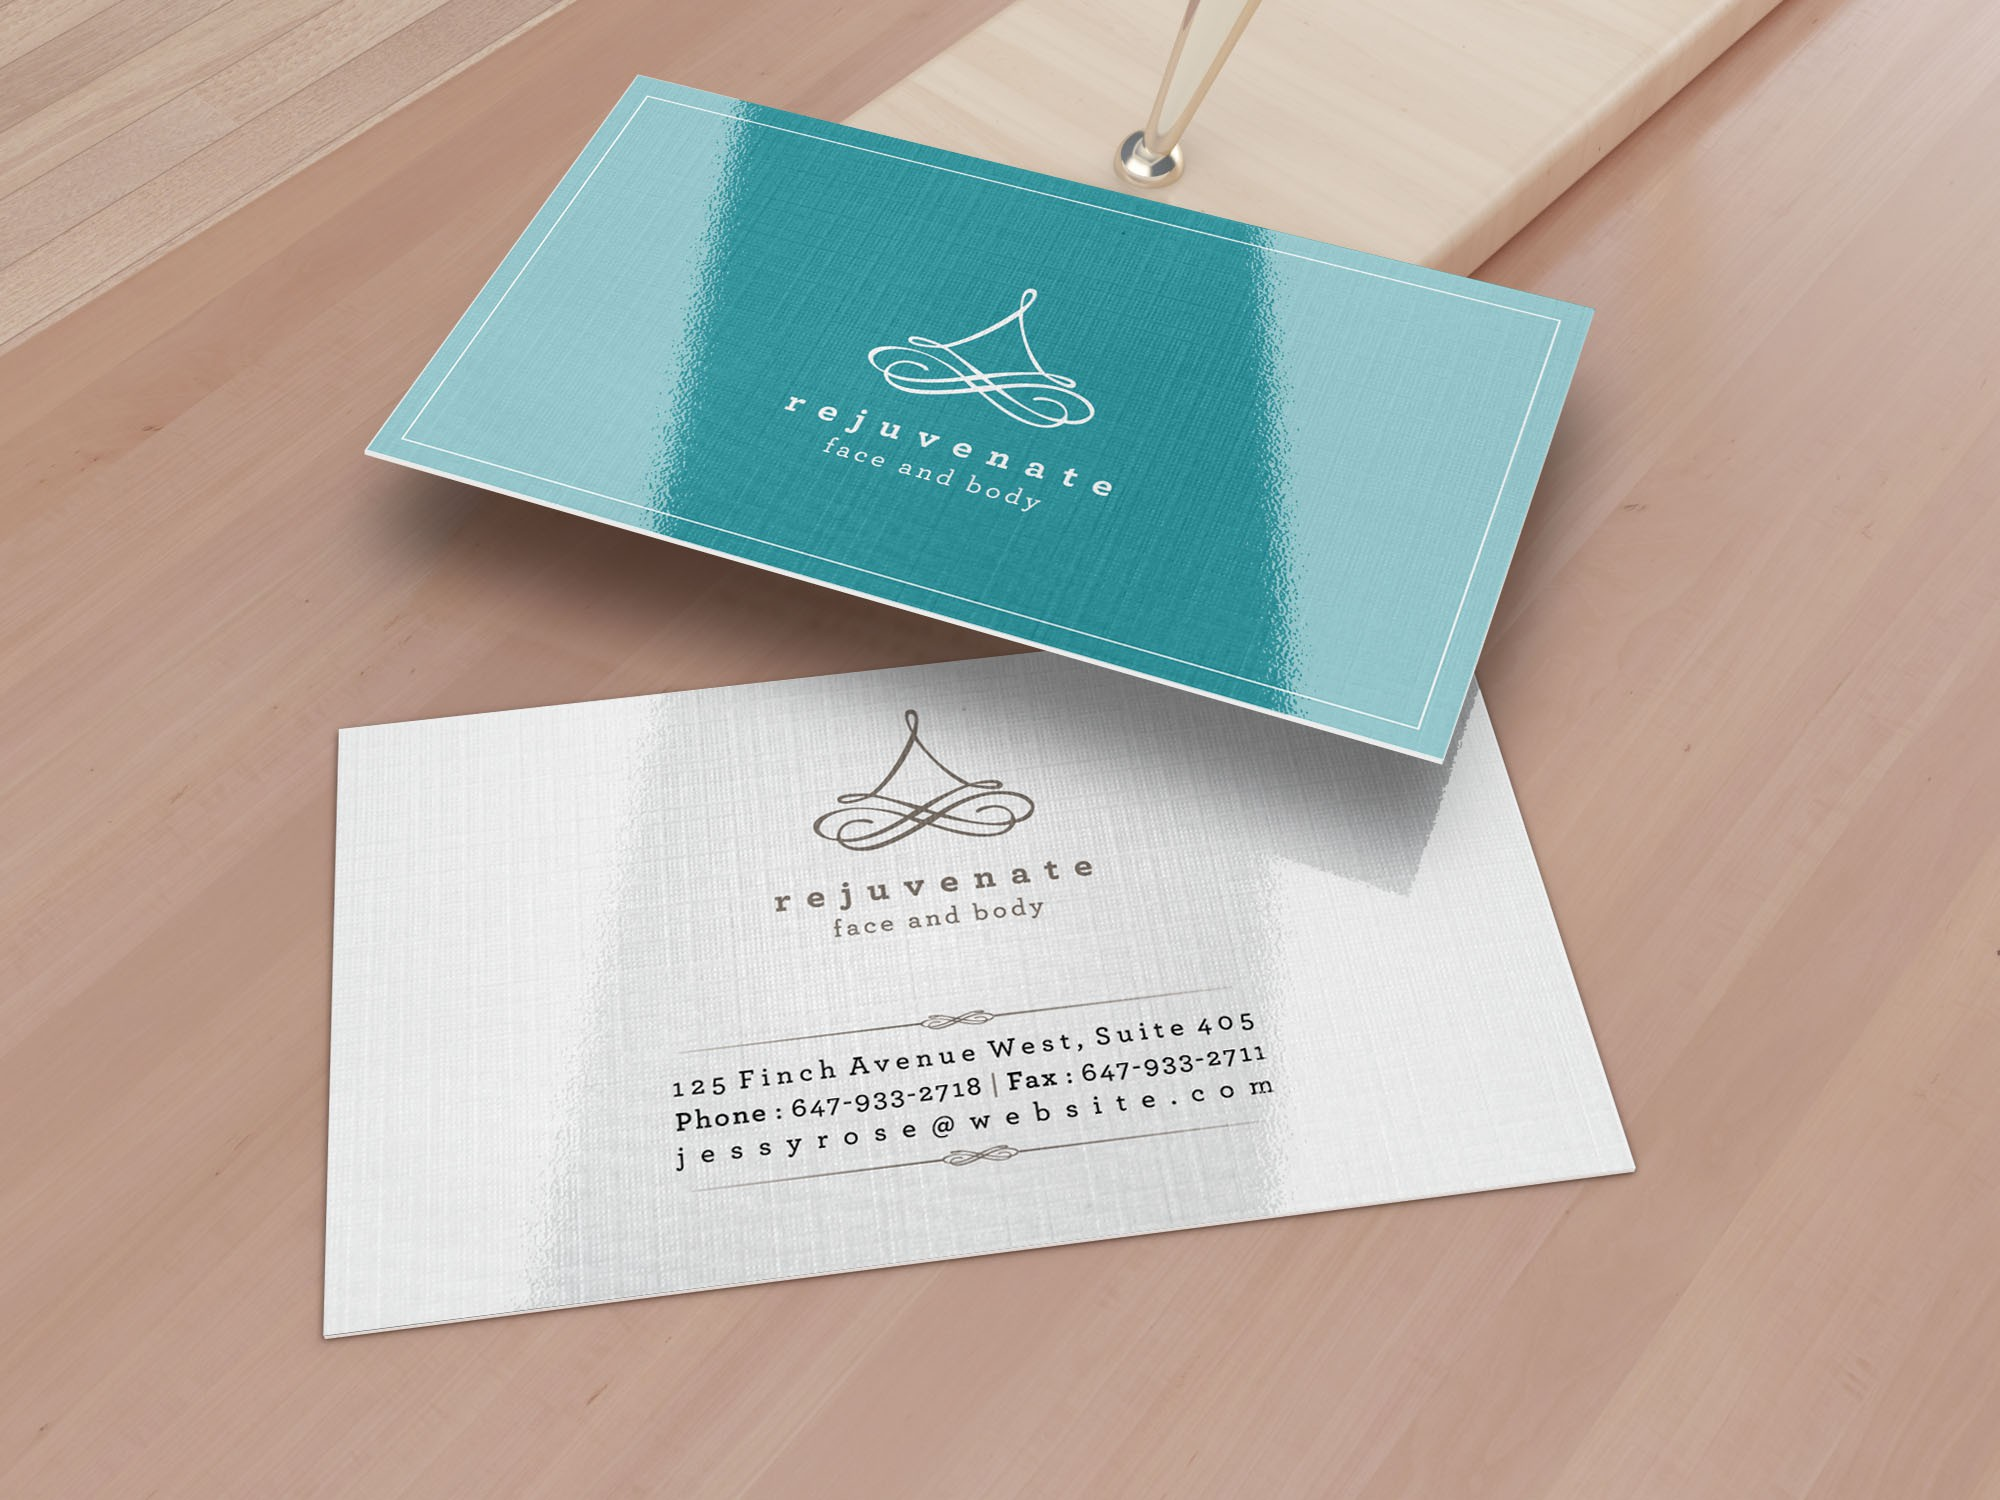 stationery for rejuvenate face and body